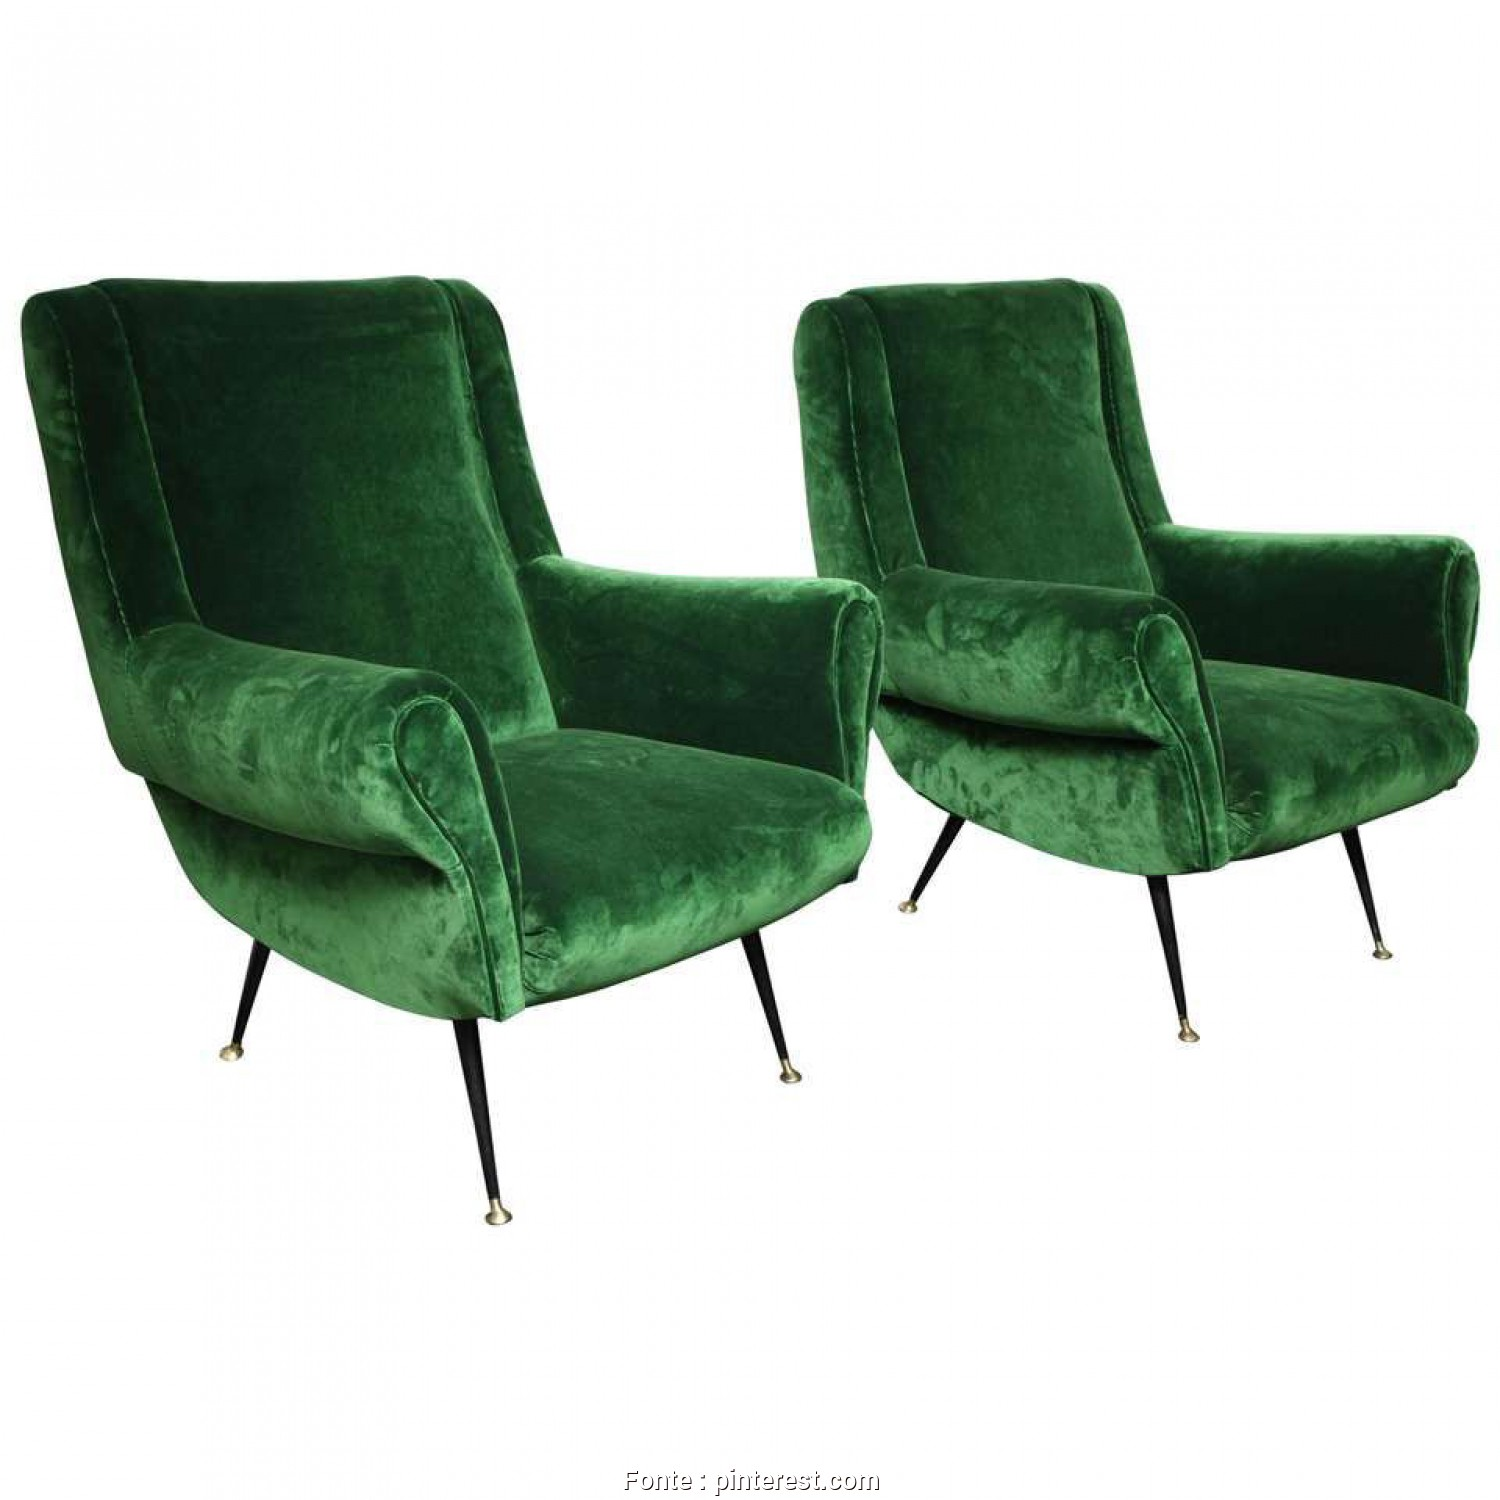 Poltrone Vintage Shop Online, Magnifico Pair Of Vintage Italian Green Velvet Chairs 1, Emerald/Kelly